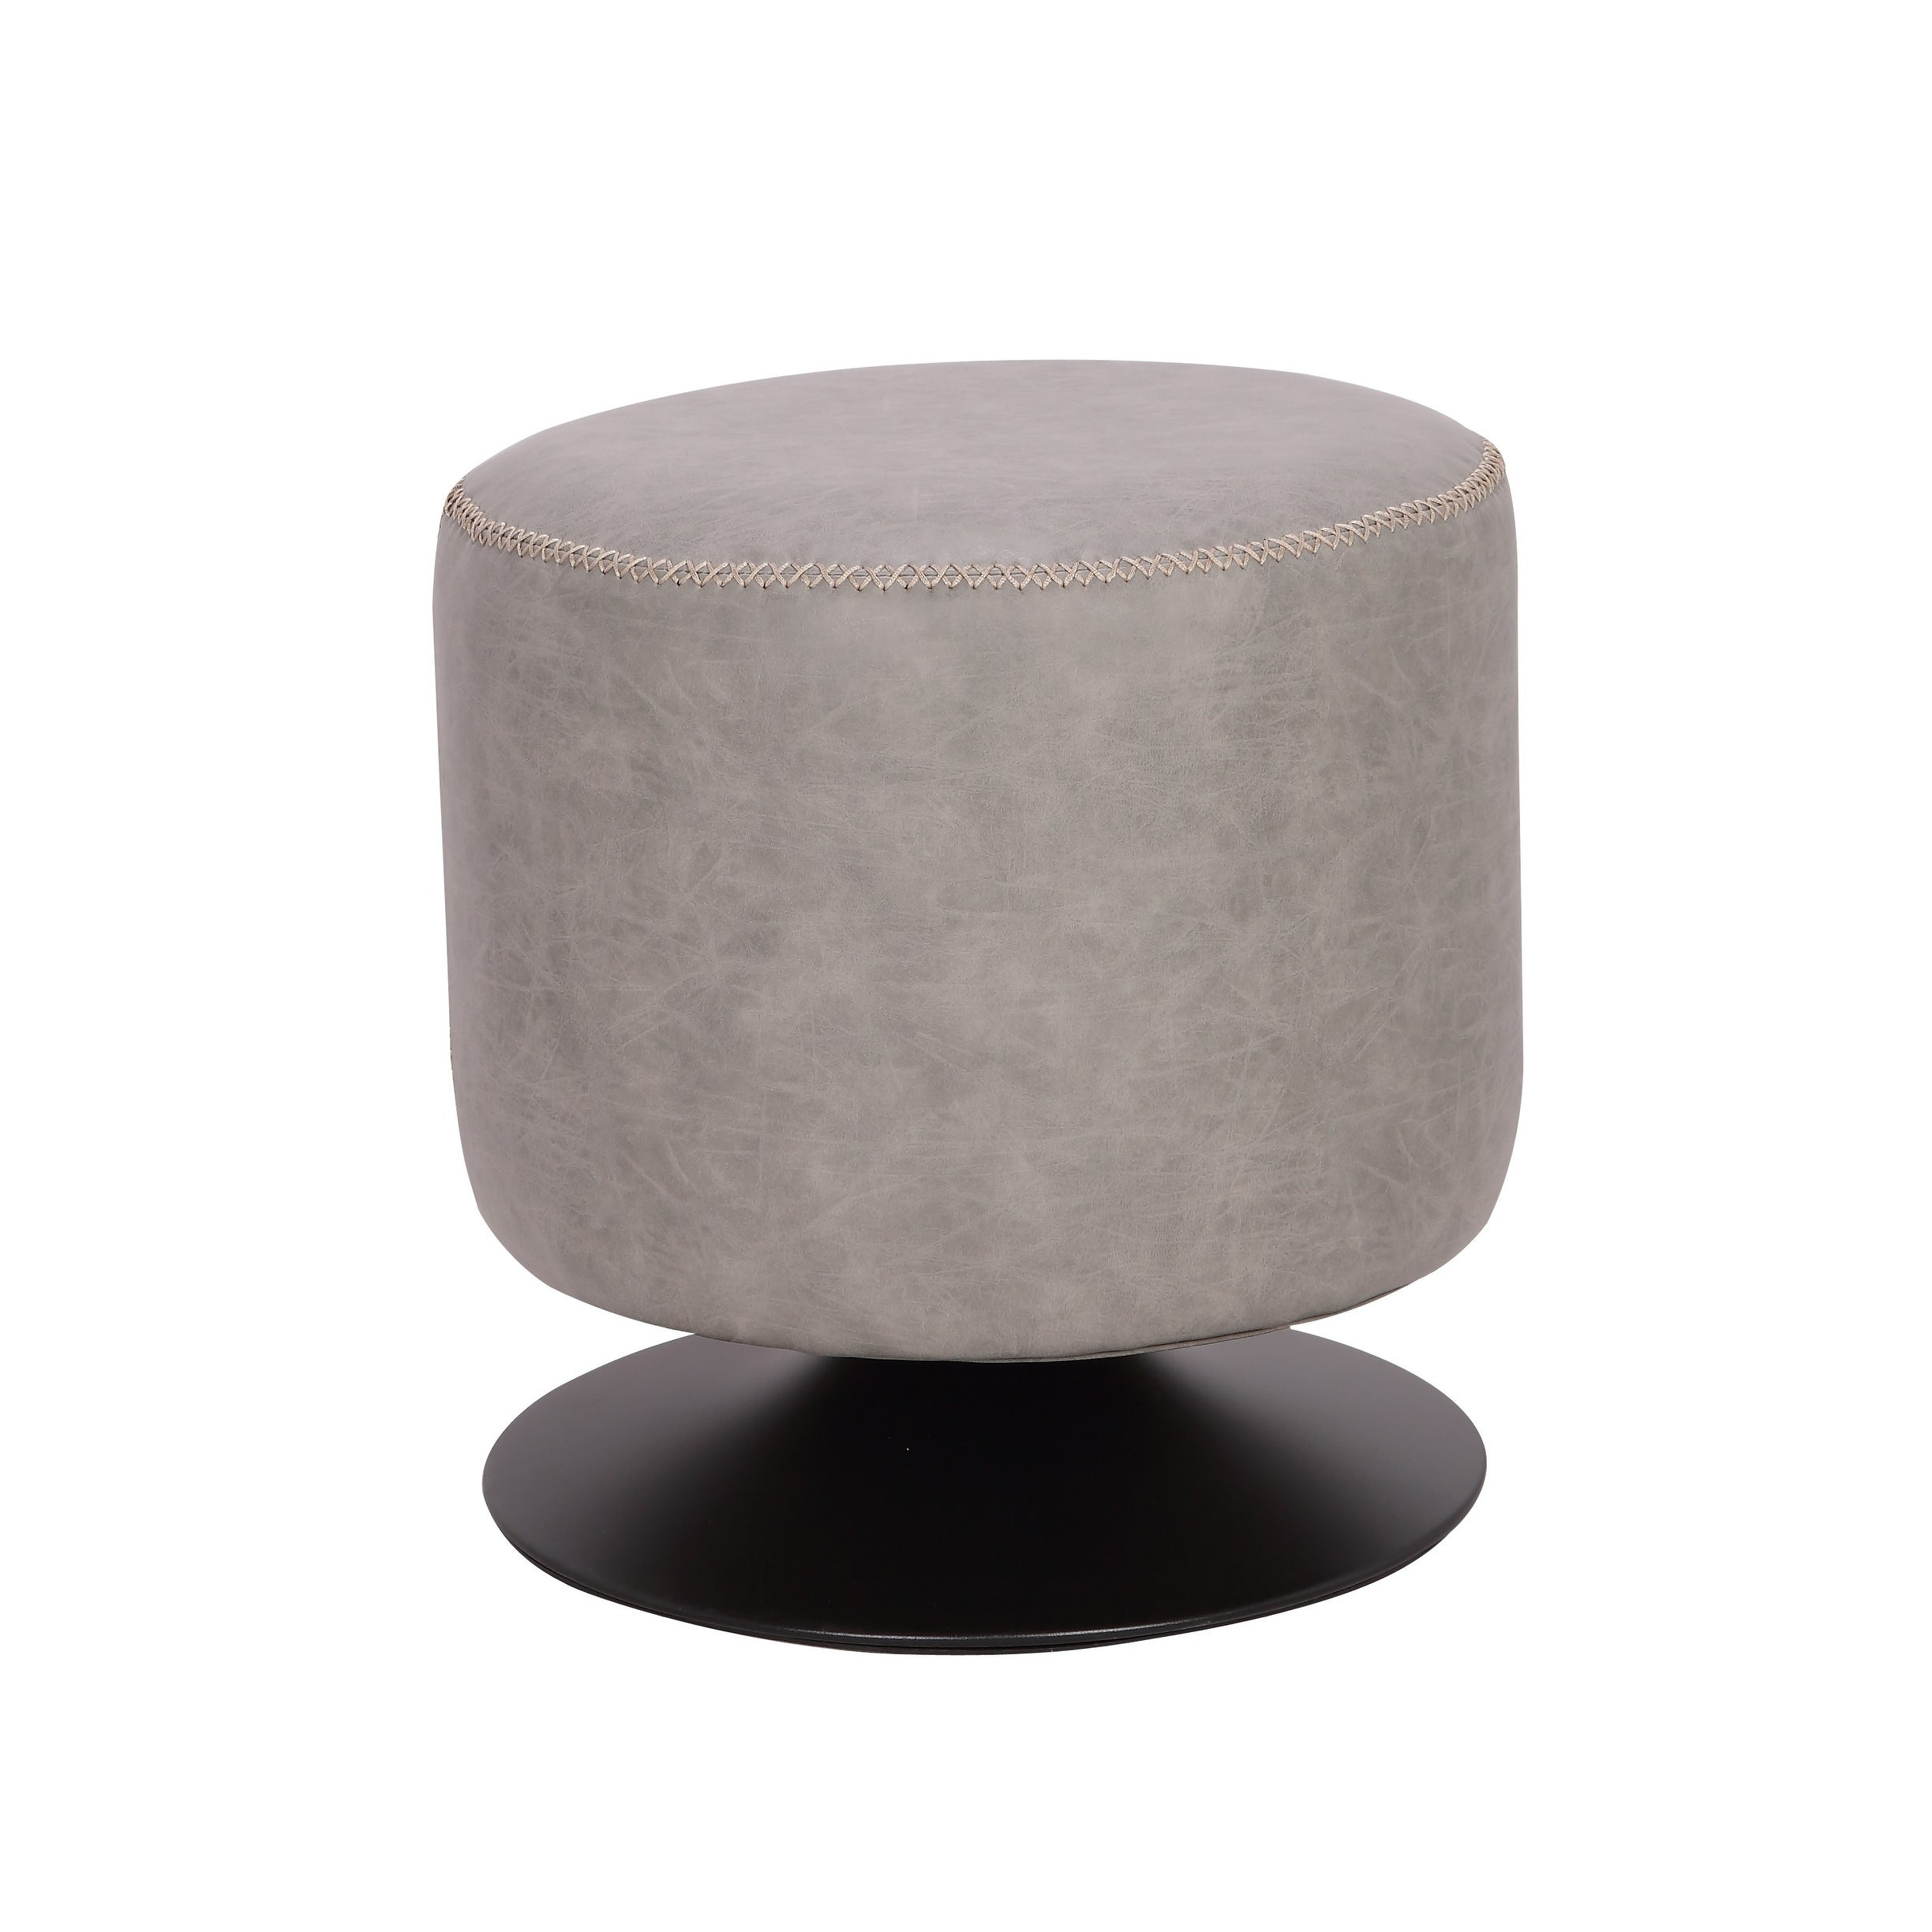 Marvelous Somette 5305 Round Vintage Upholstered Ottoman Caraccident5 Cool Chair Designs And Ideas Caraccident5Info